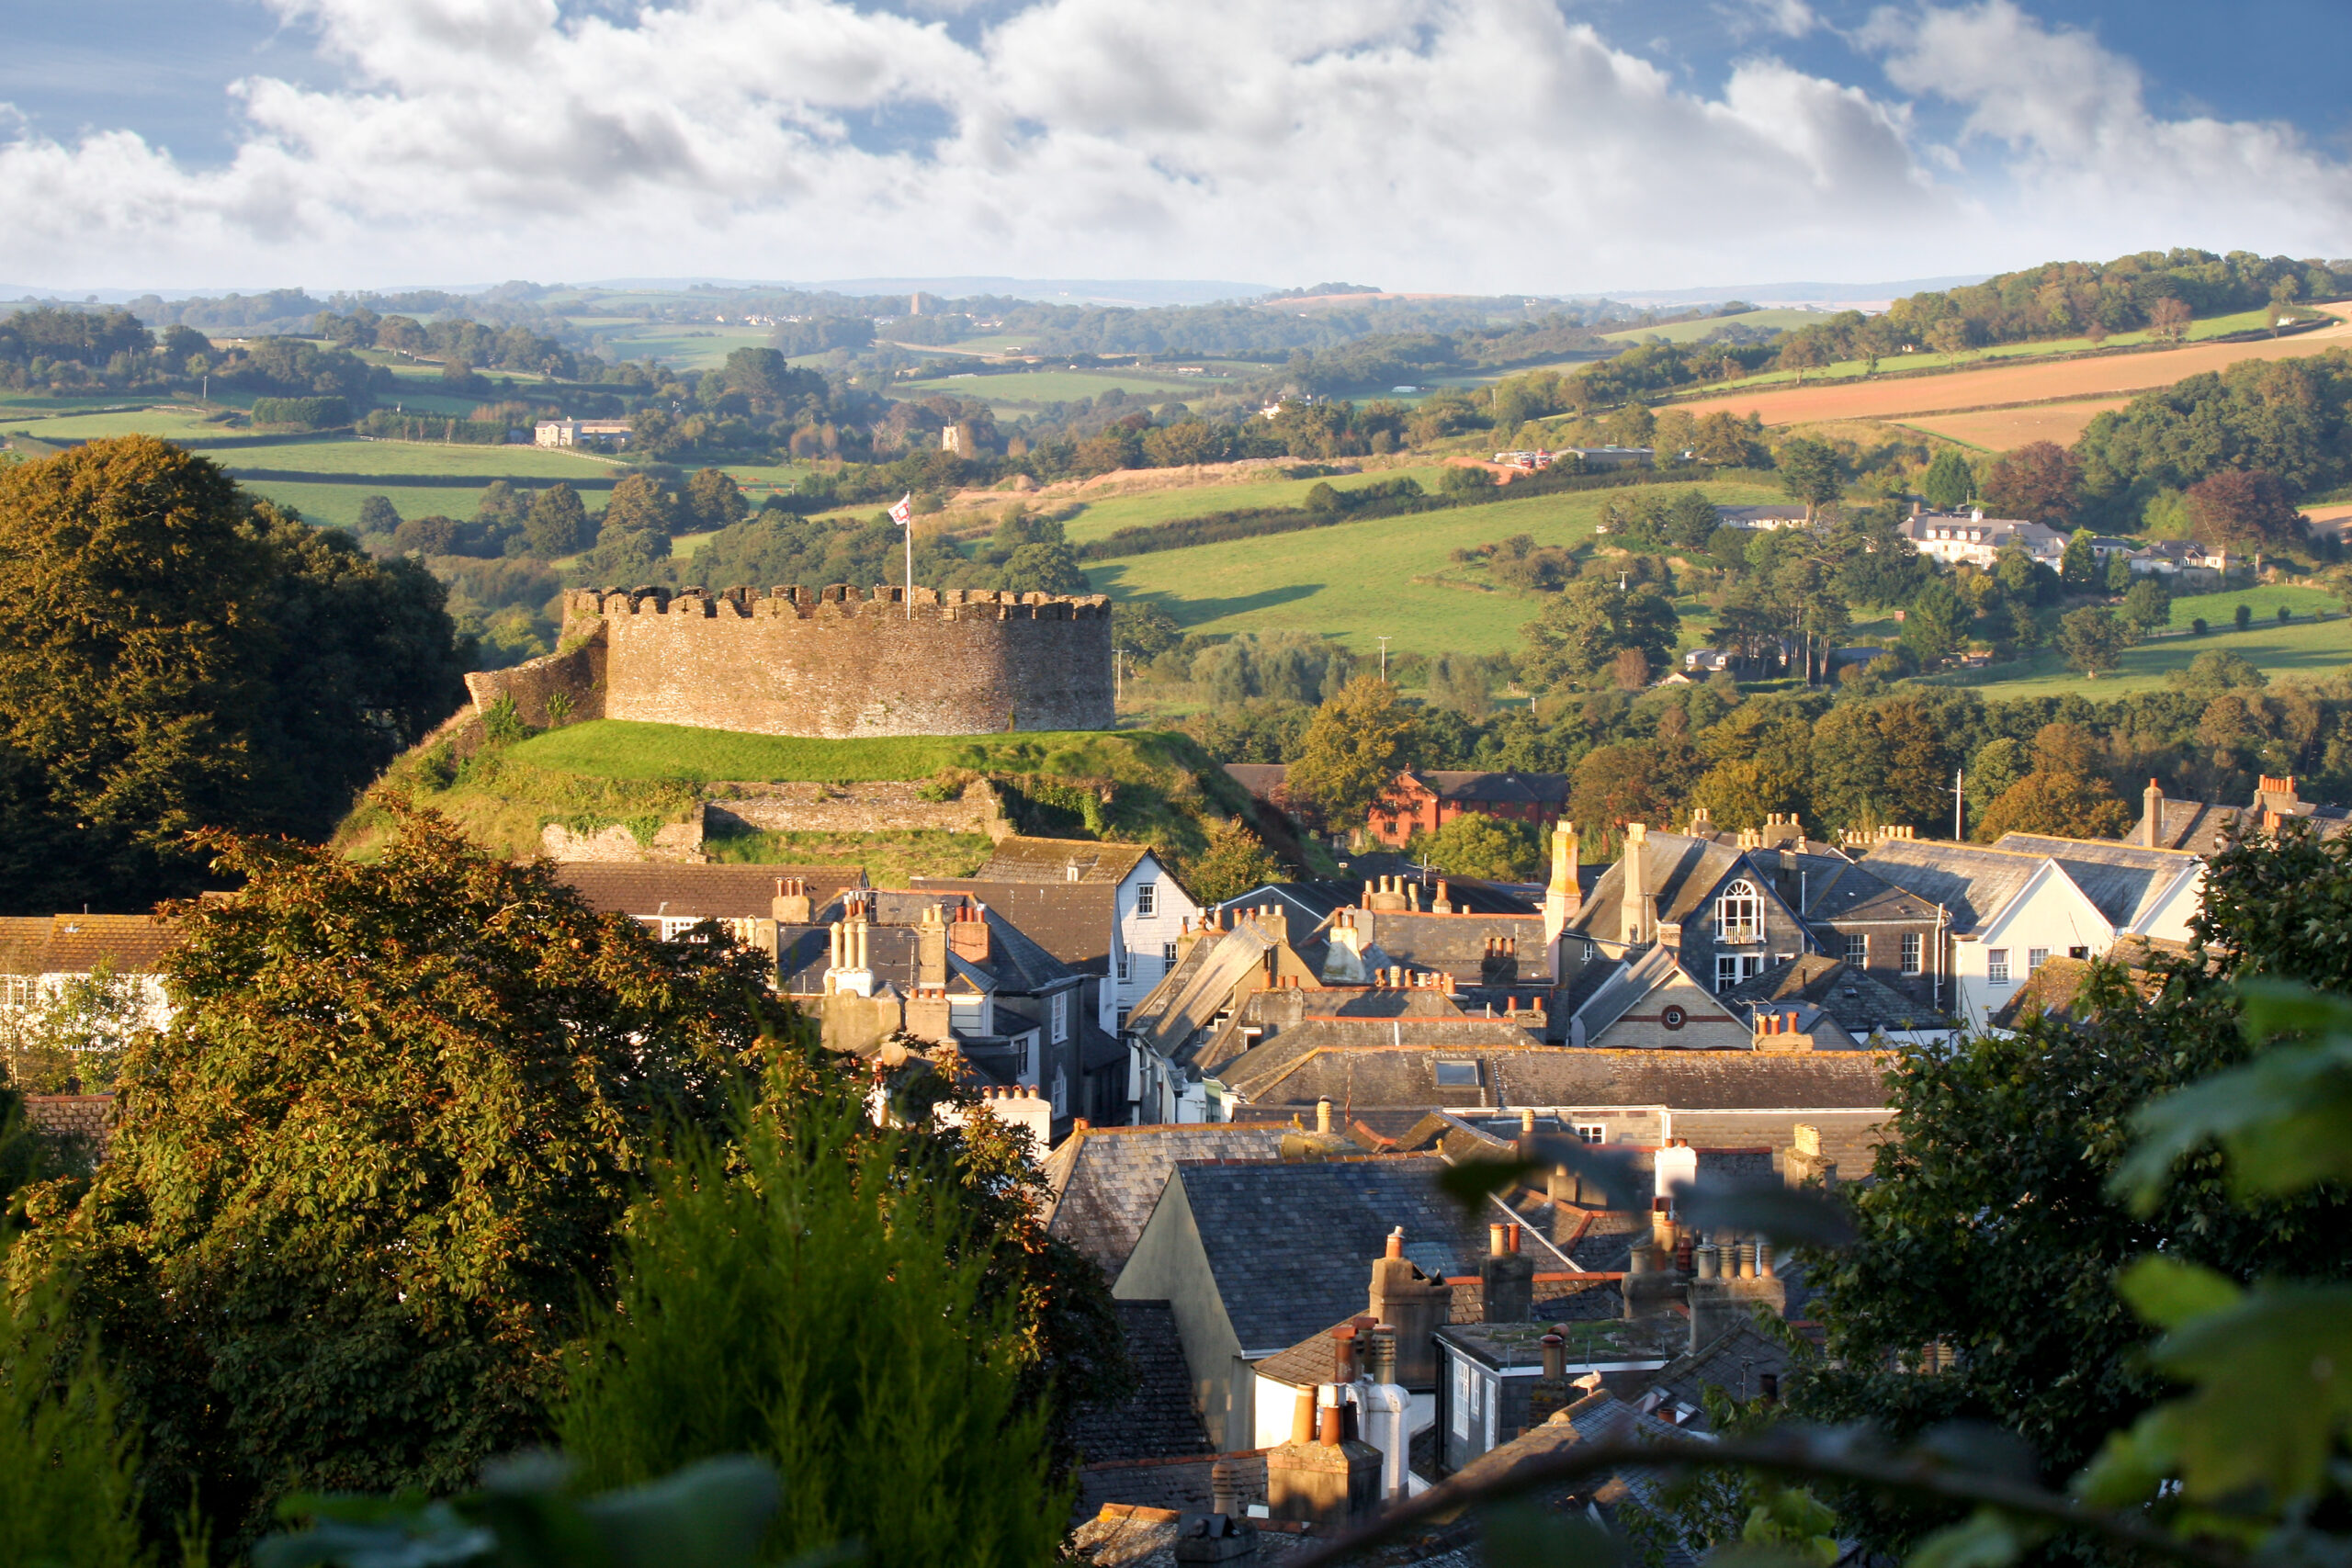 Totnes with Totnes Castle in the centre